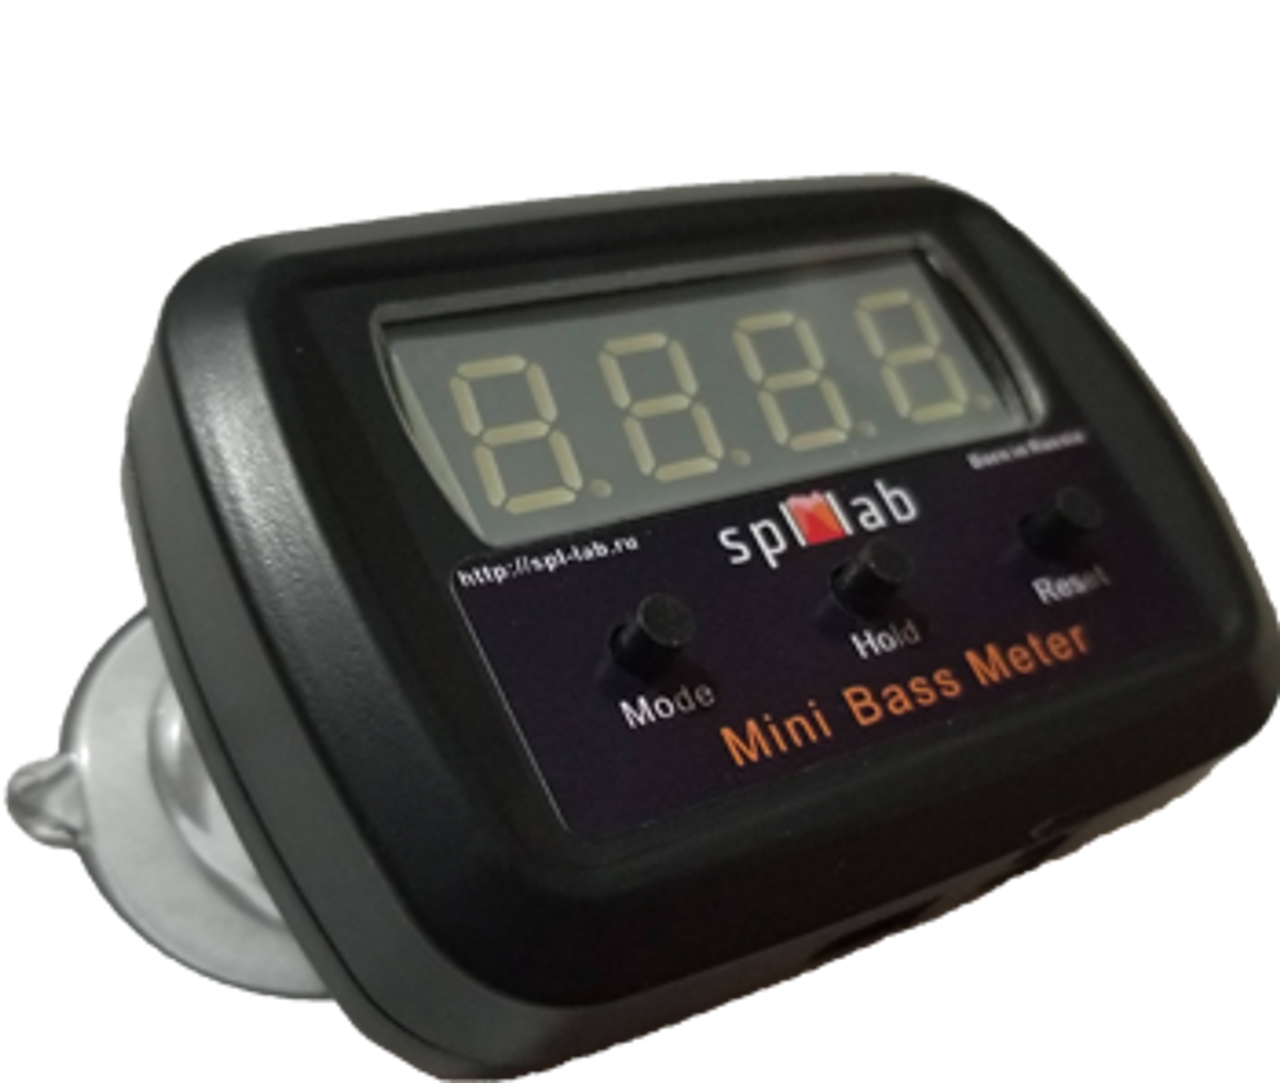 SPL LAB MINI BASS METER v2